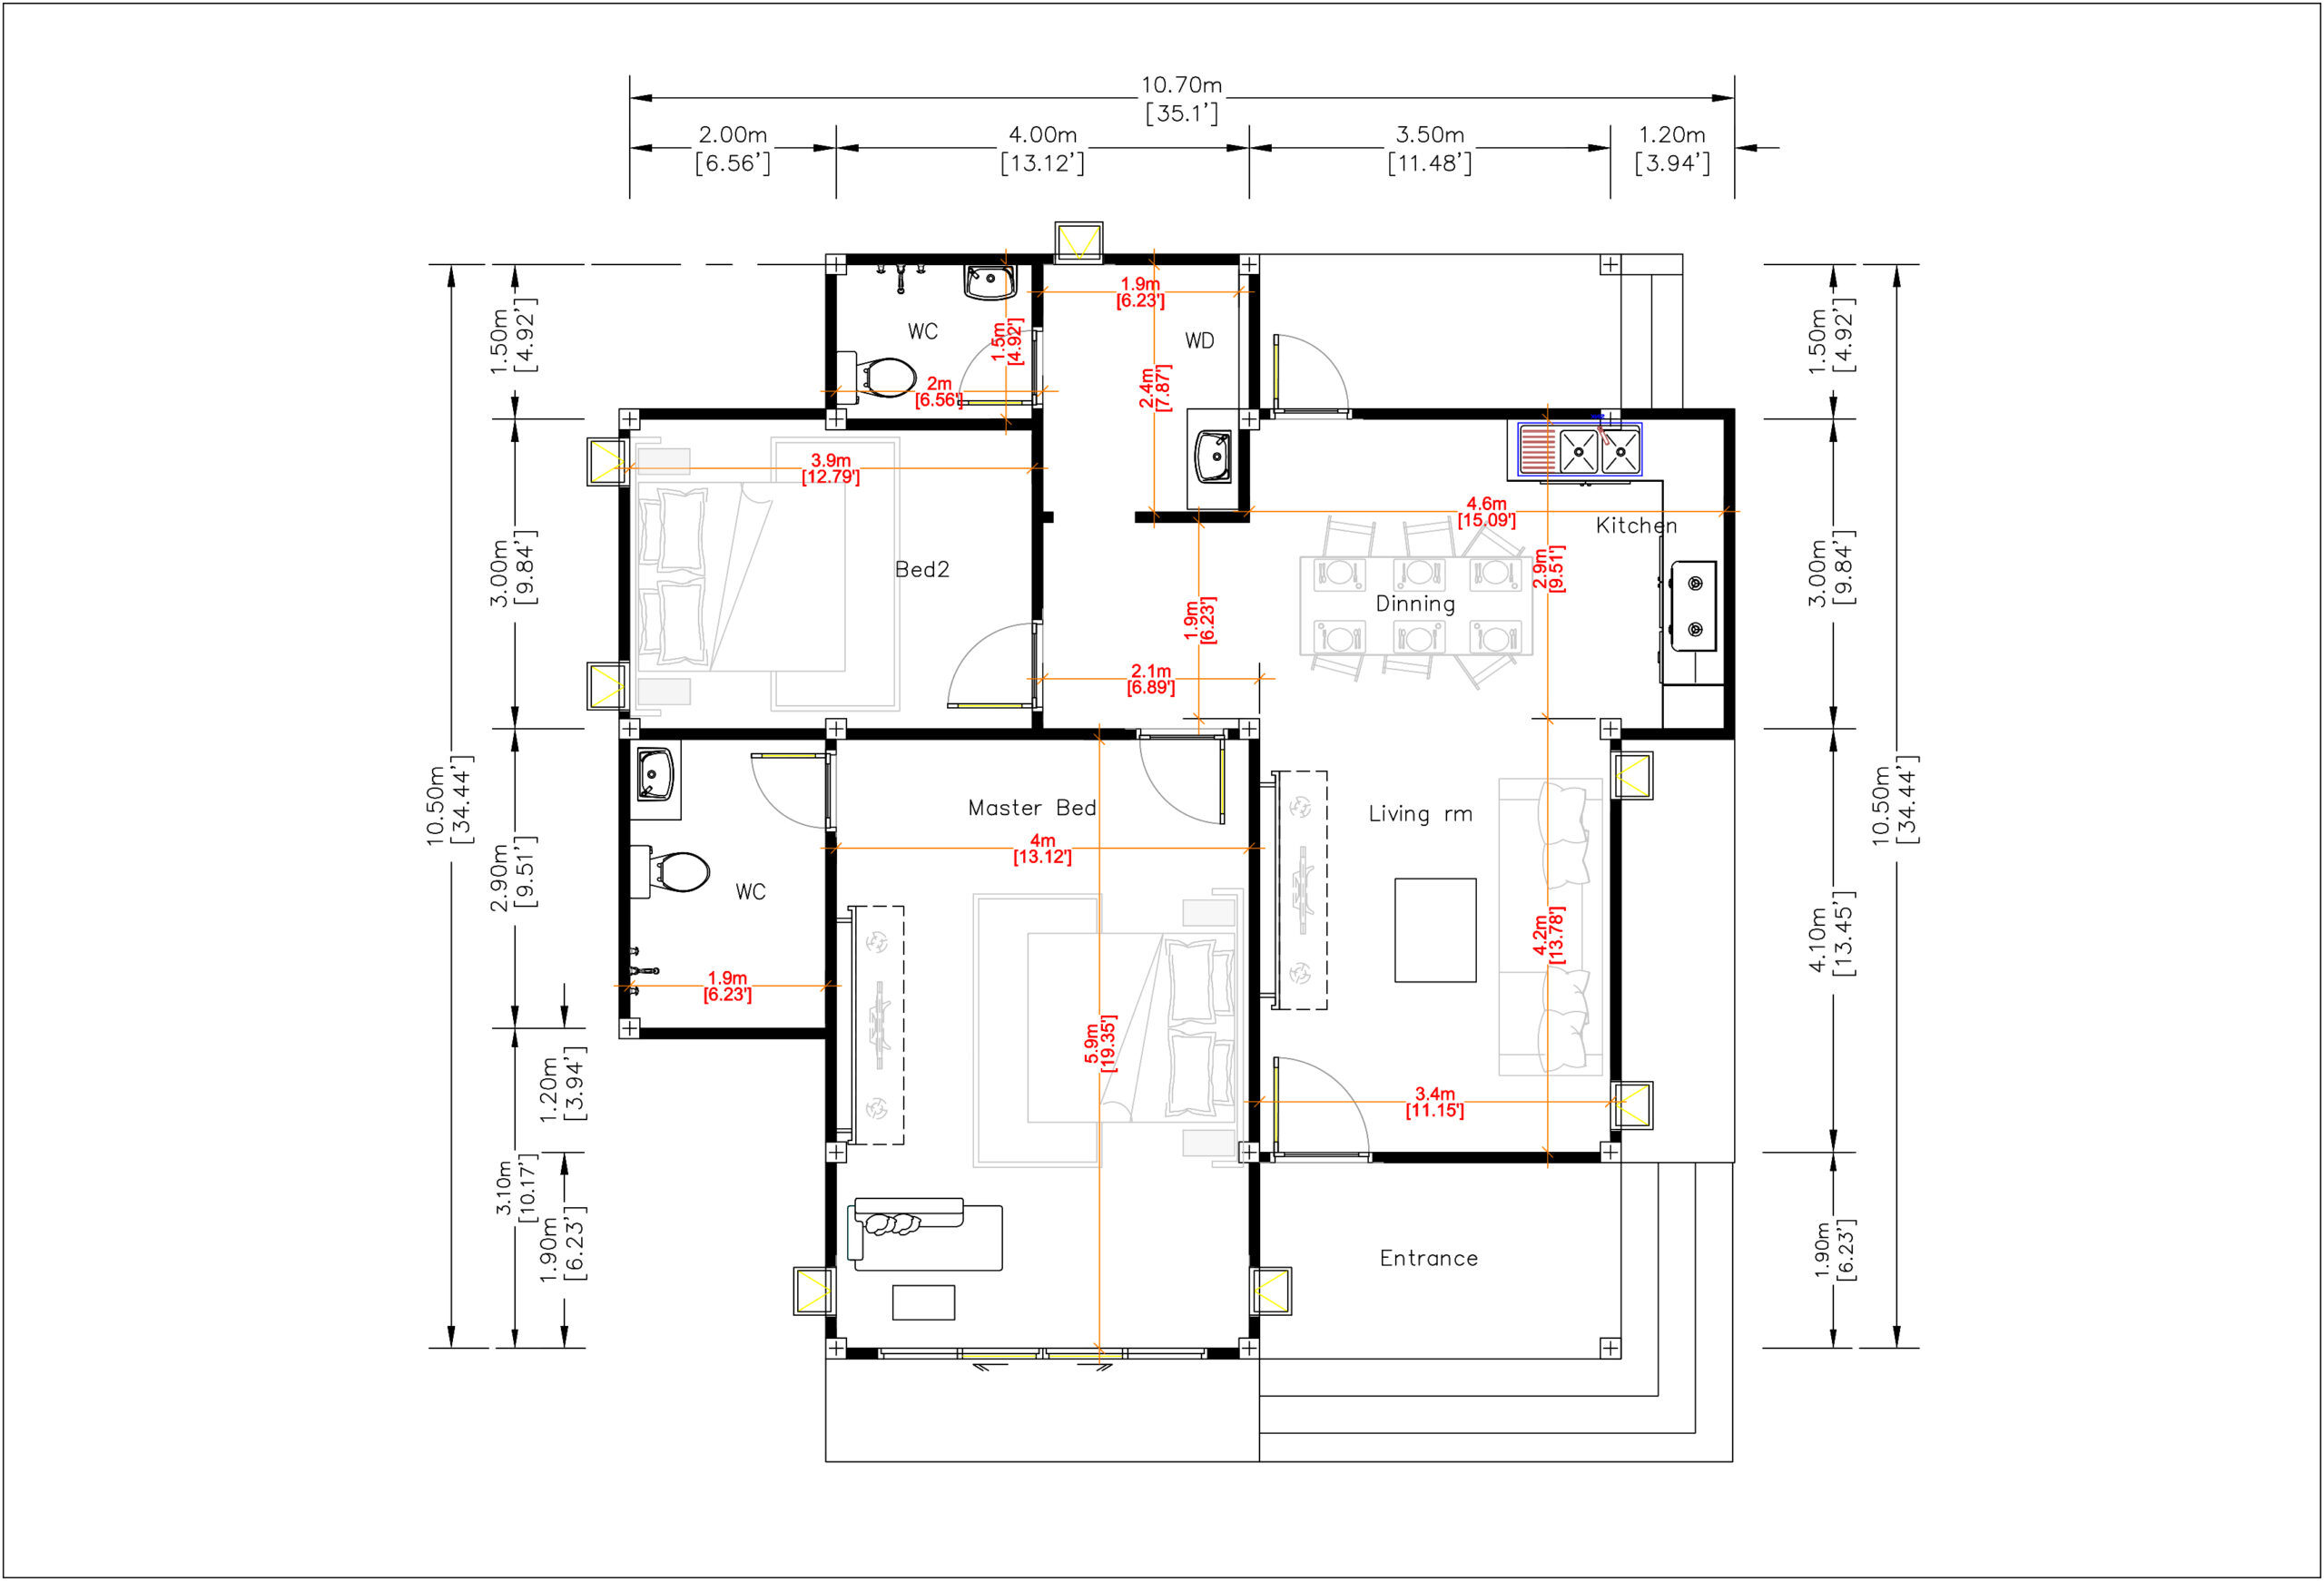 House Plans 10.7x10.5m with 2 Bedrooms Flat roof - SamHousePlans